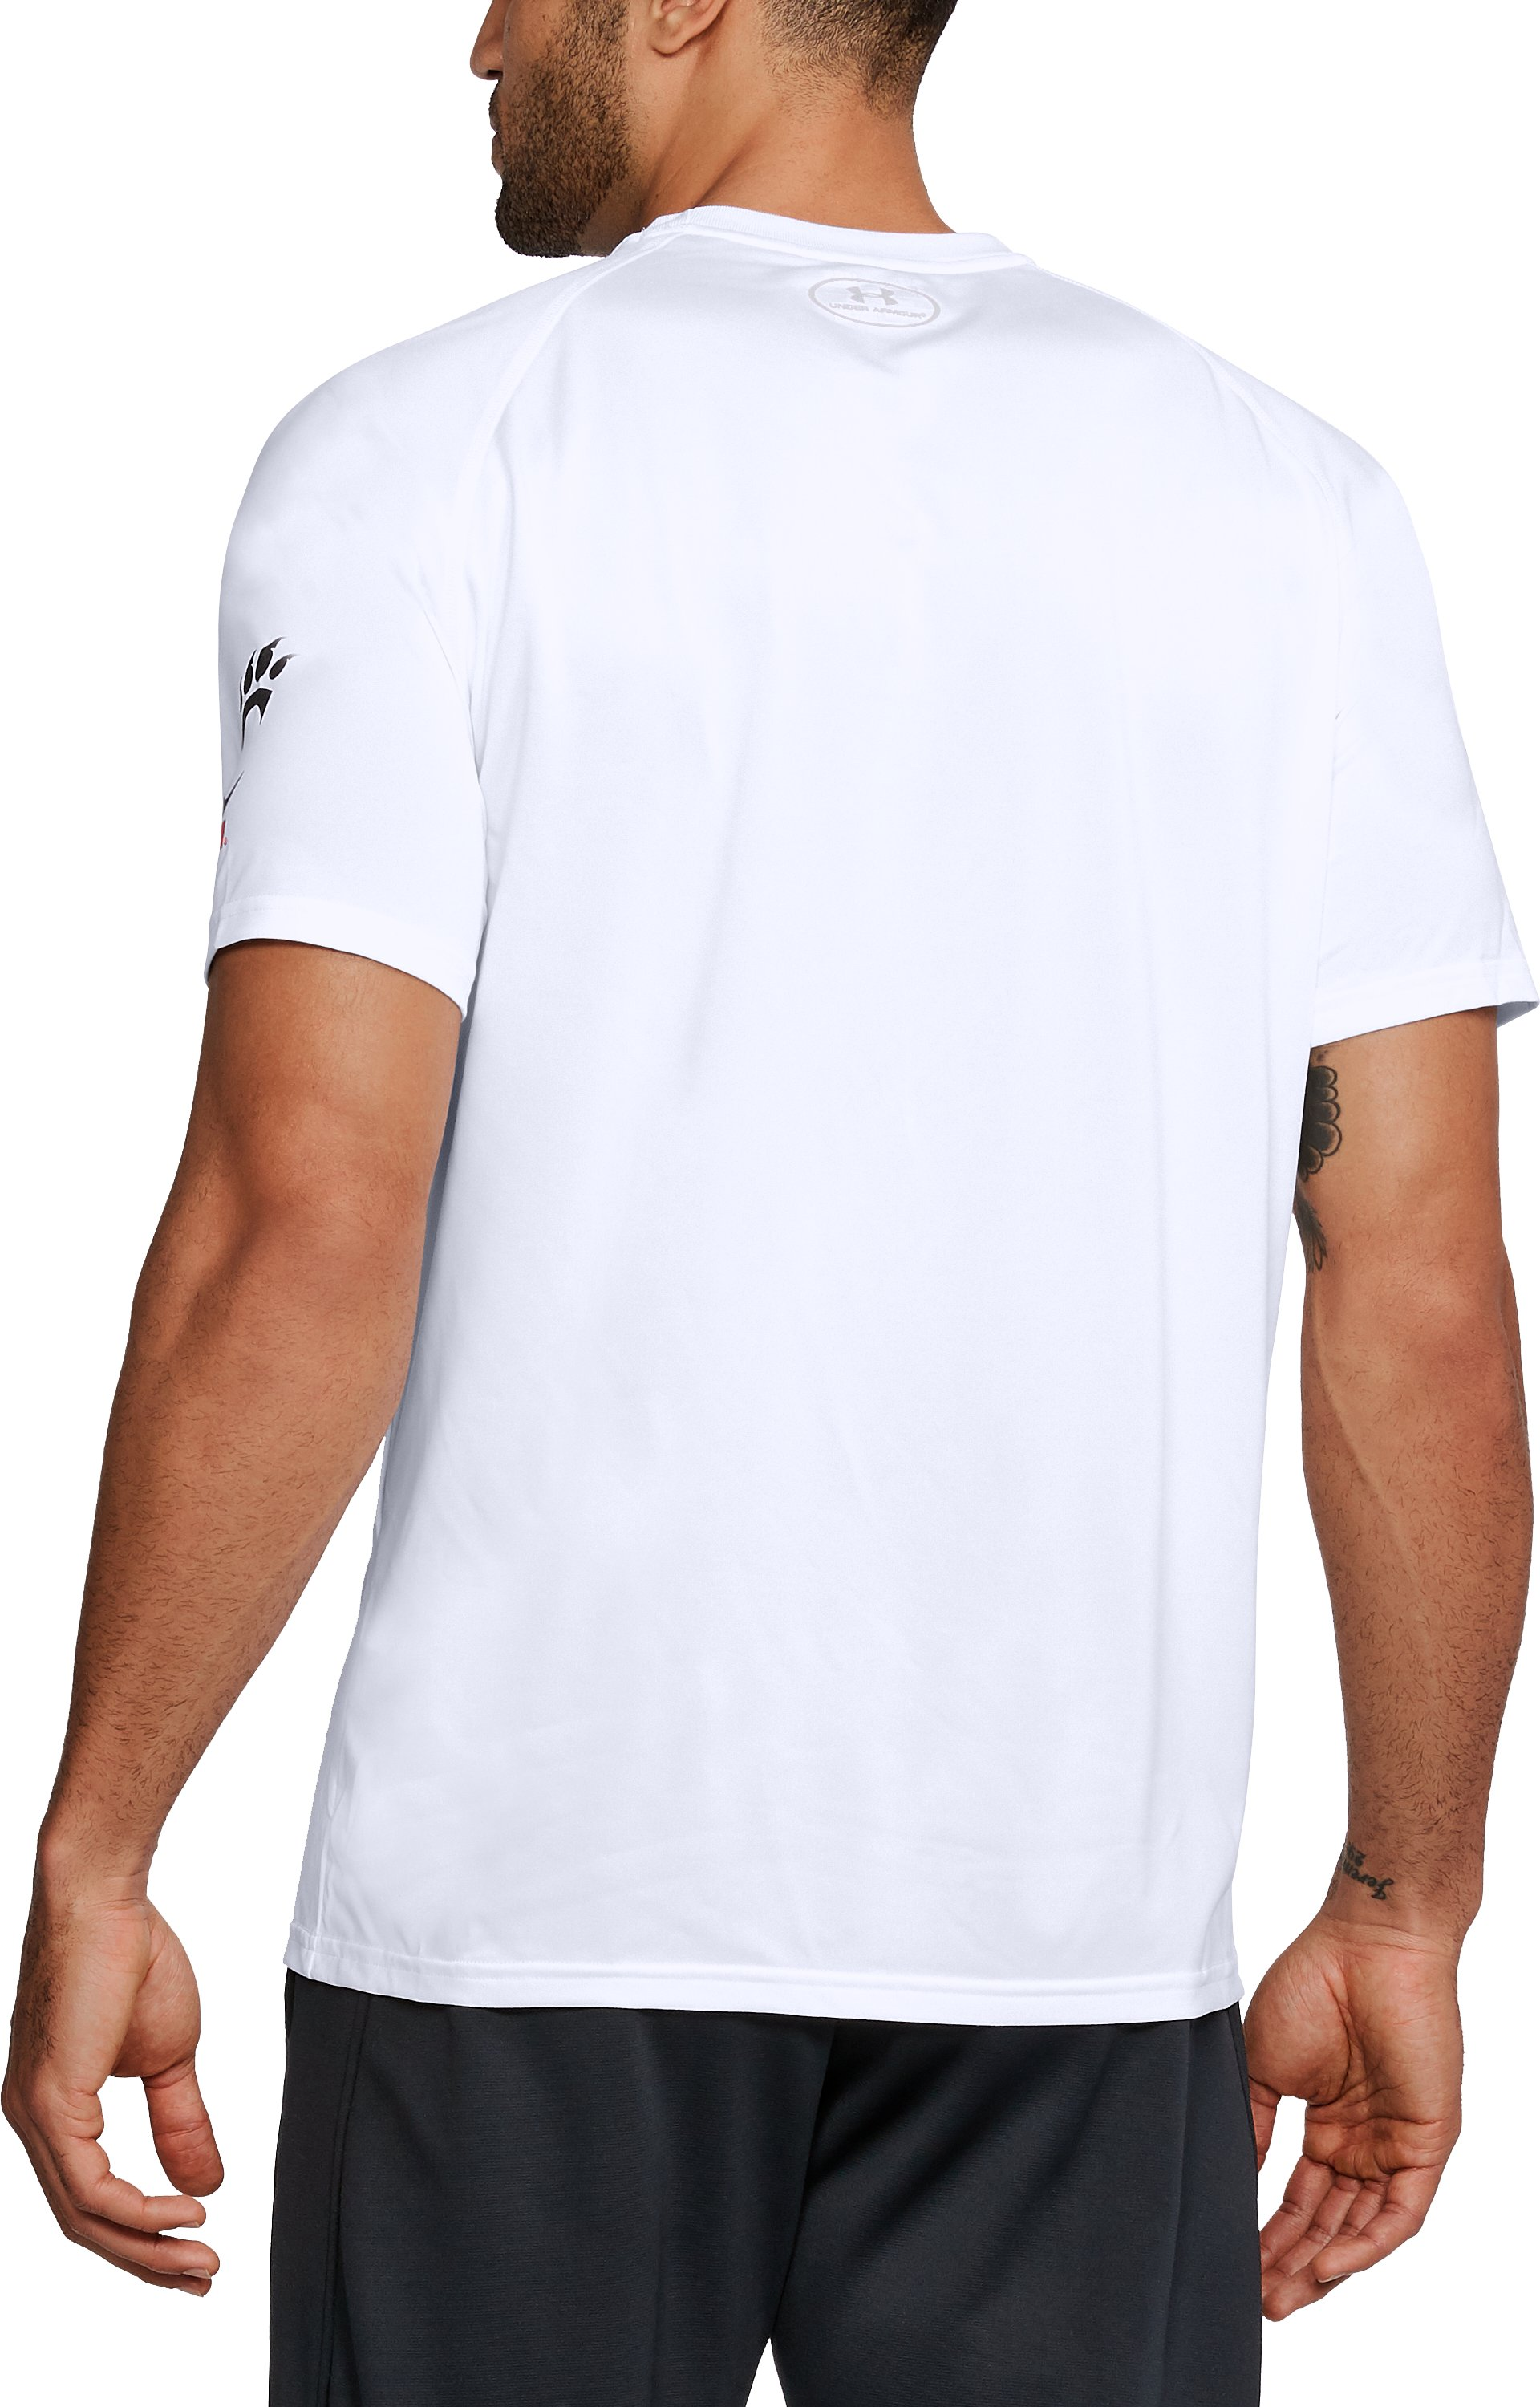 Men's Cincinnati UA Tech™ Troop Tech T-Shirt, White,